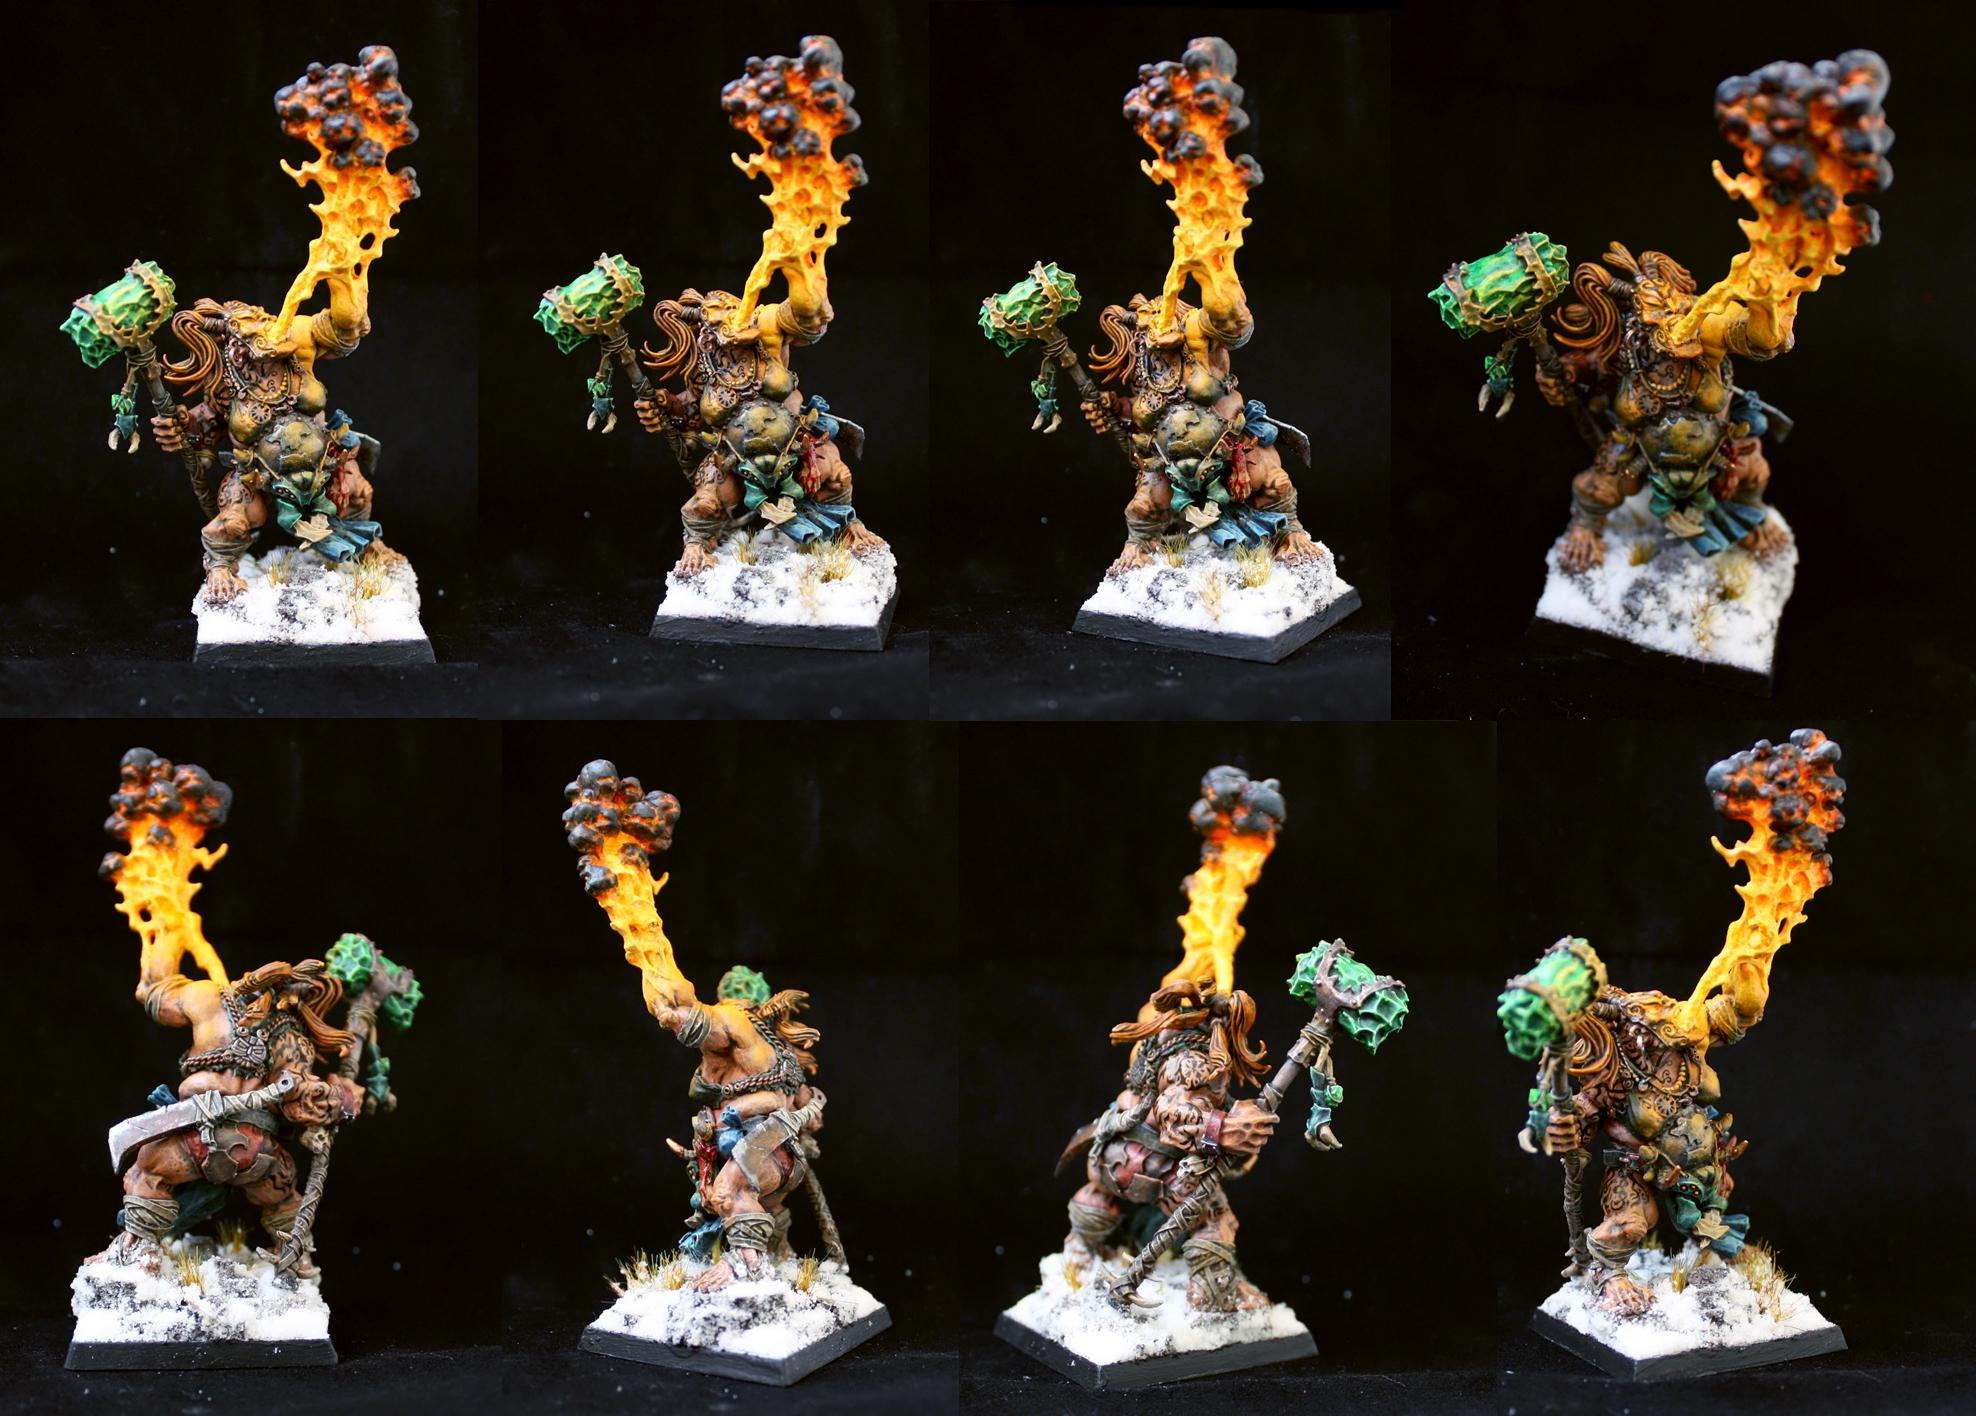 Firebelly, Ogres, Ogre firebelly female version finished (2014)